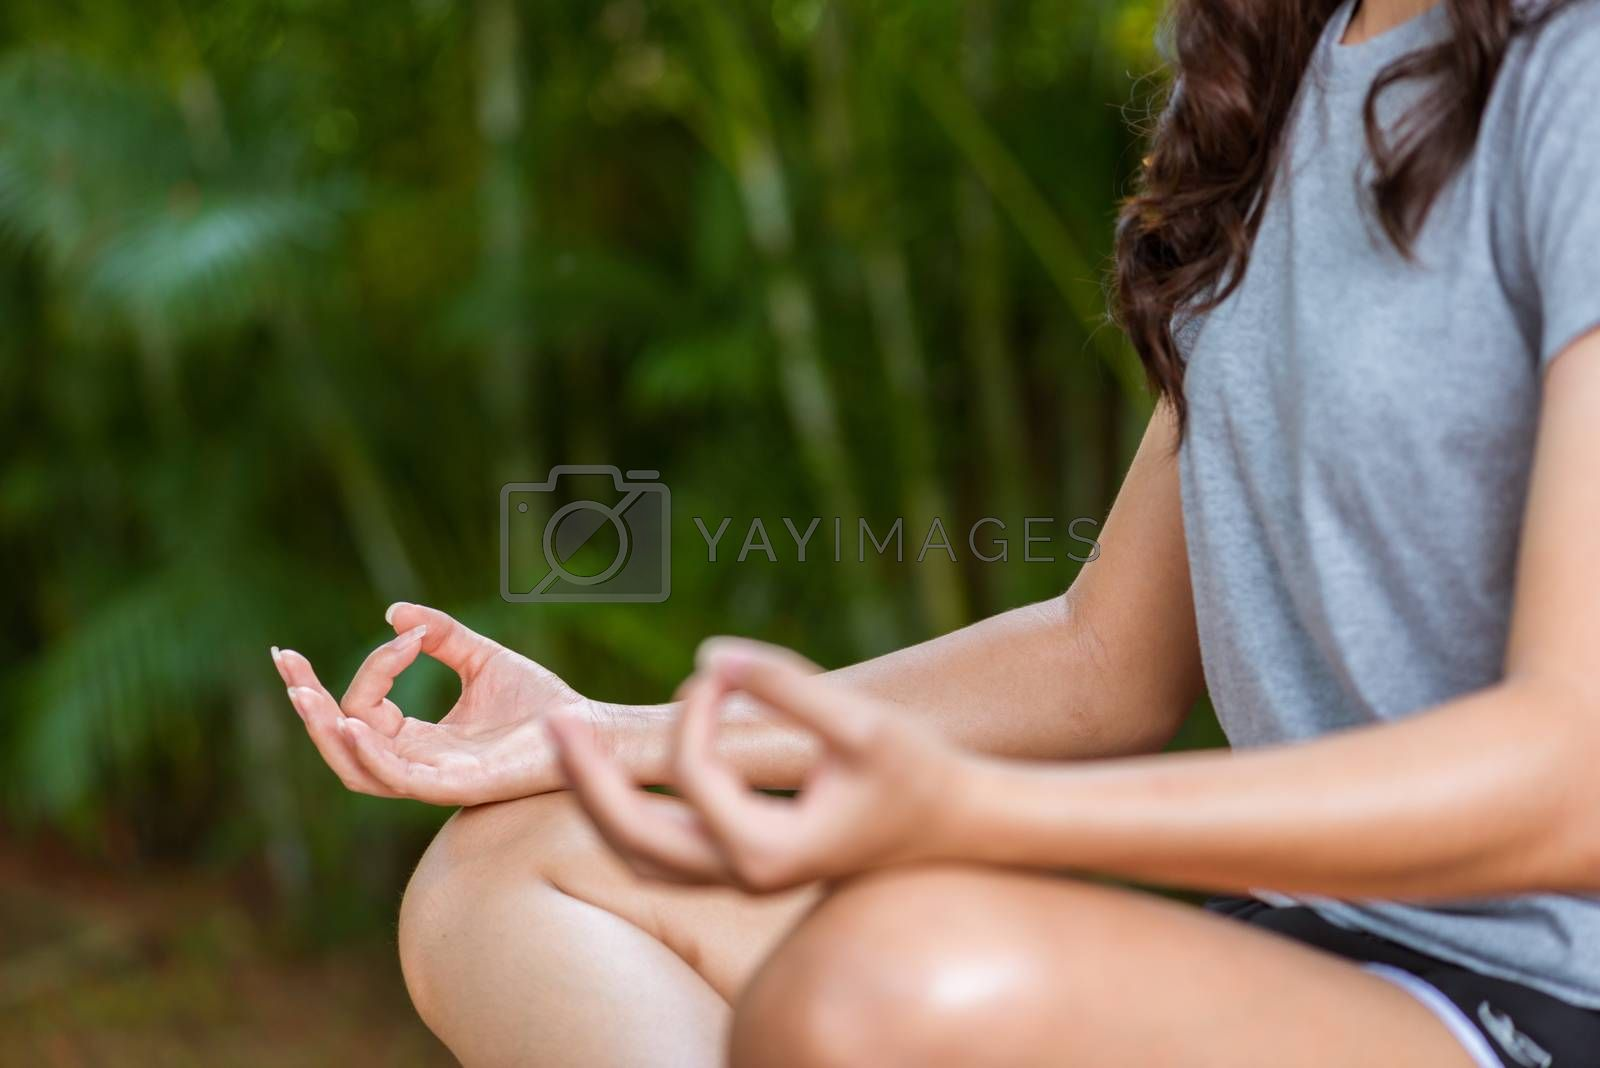 young women practices yoga and meditation in peaceful green gard by Lerttanapunyaporn